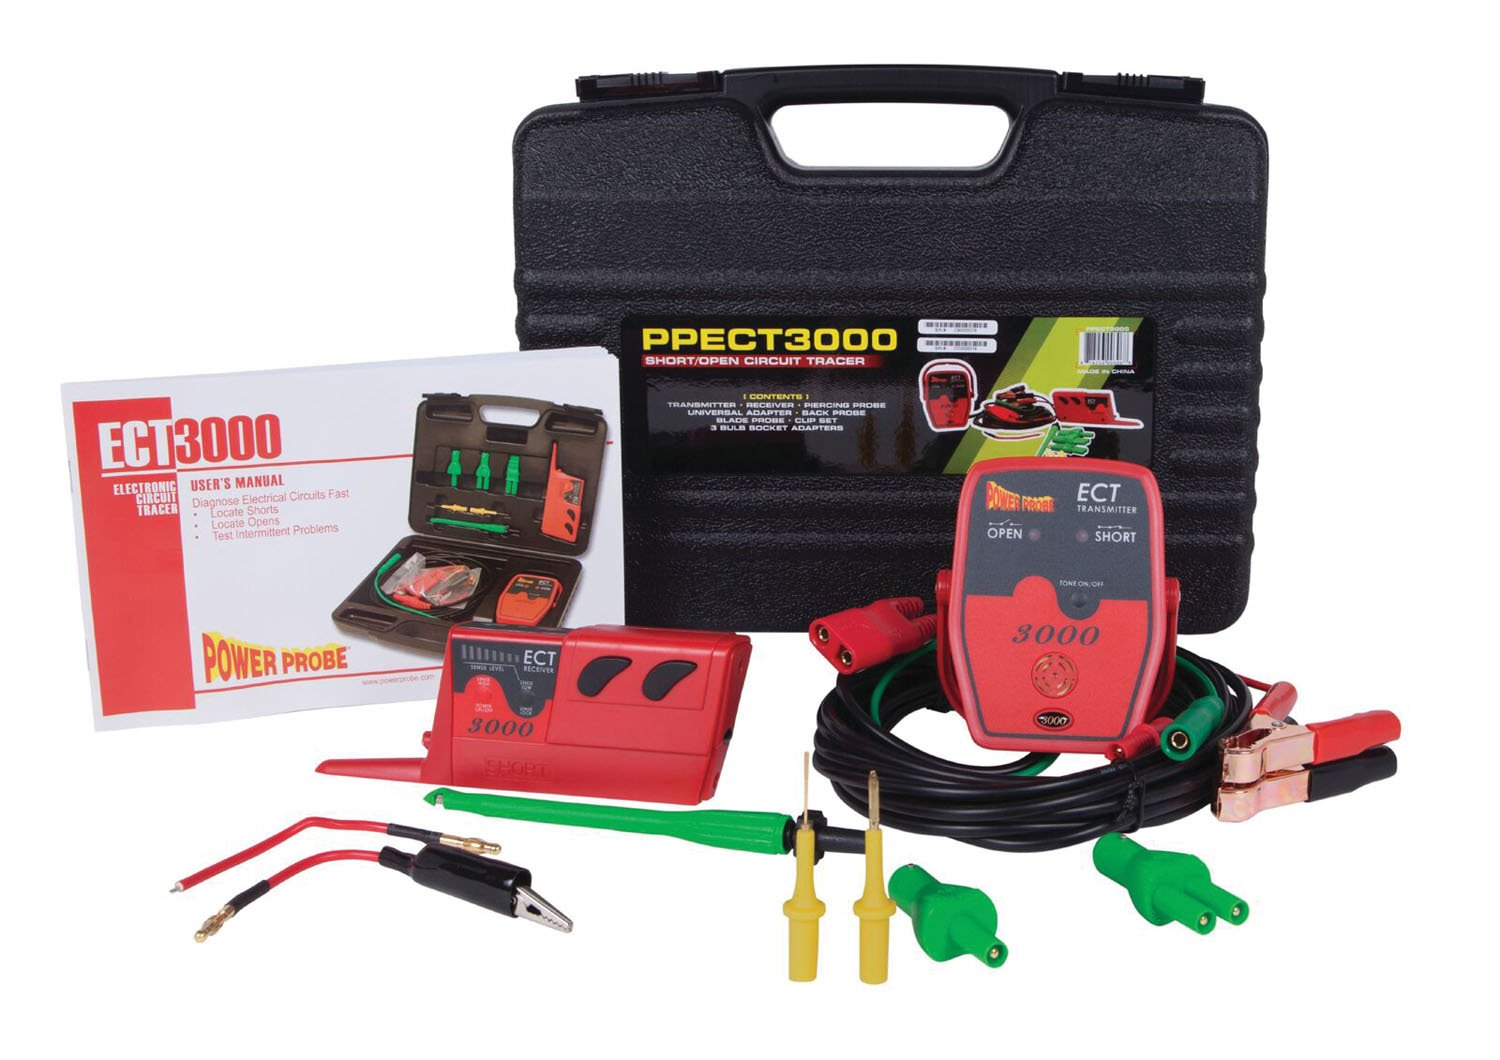 Power Probe PWP-PPECT3000 - ECT3000 Short/Open Electrical Circuit Tester